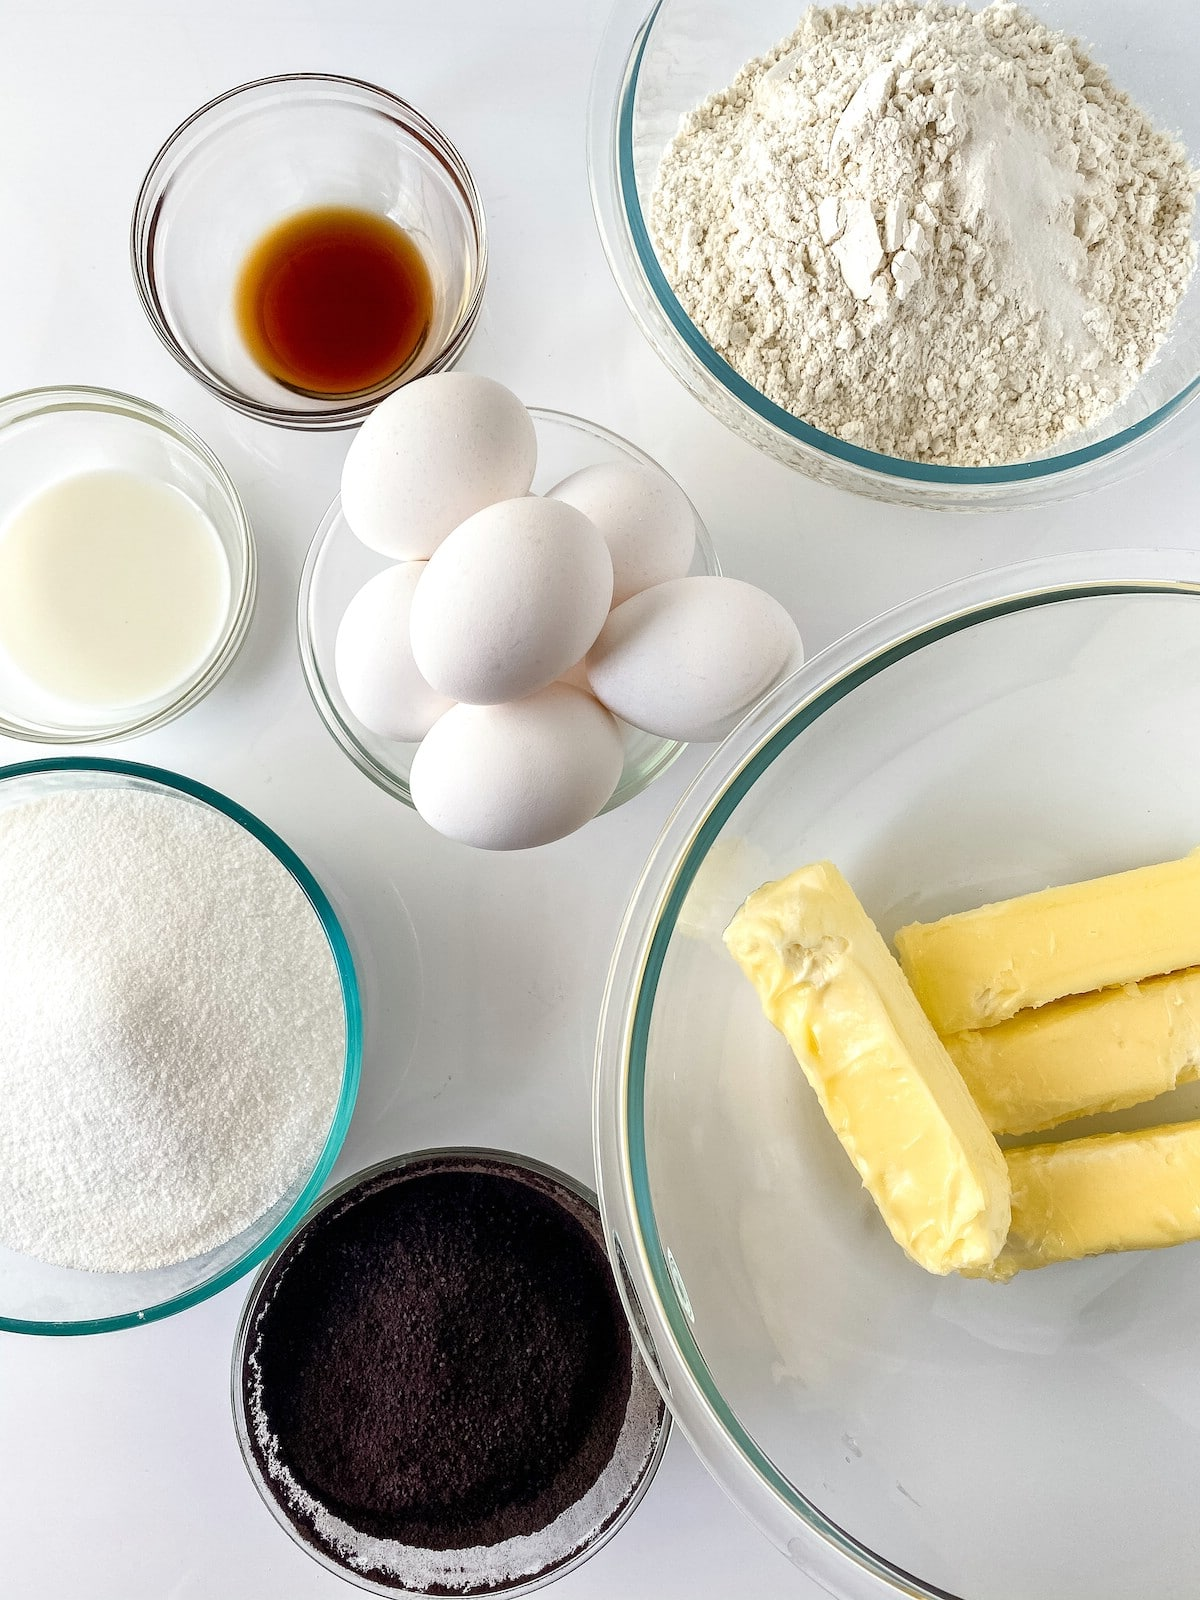 Ingredients for vanilla chocolate cake in clear bowls